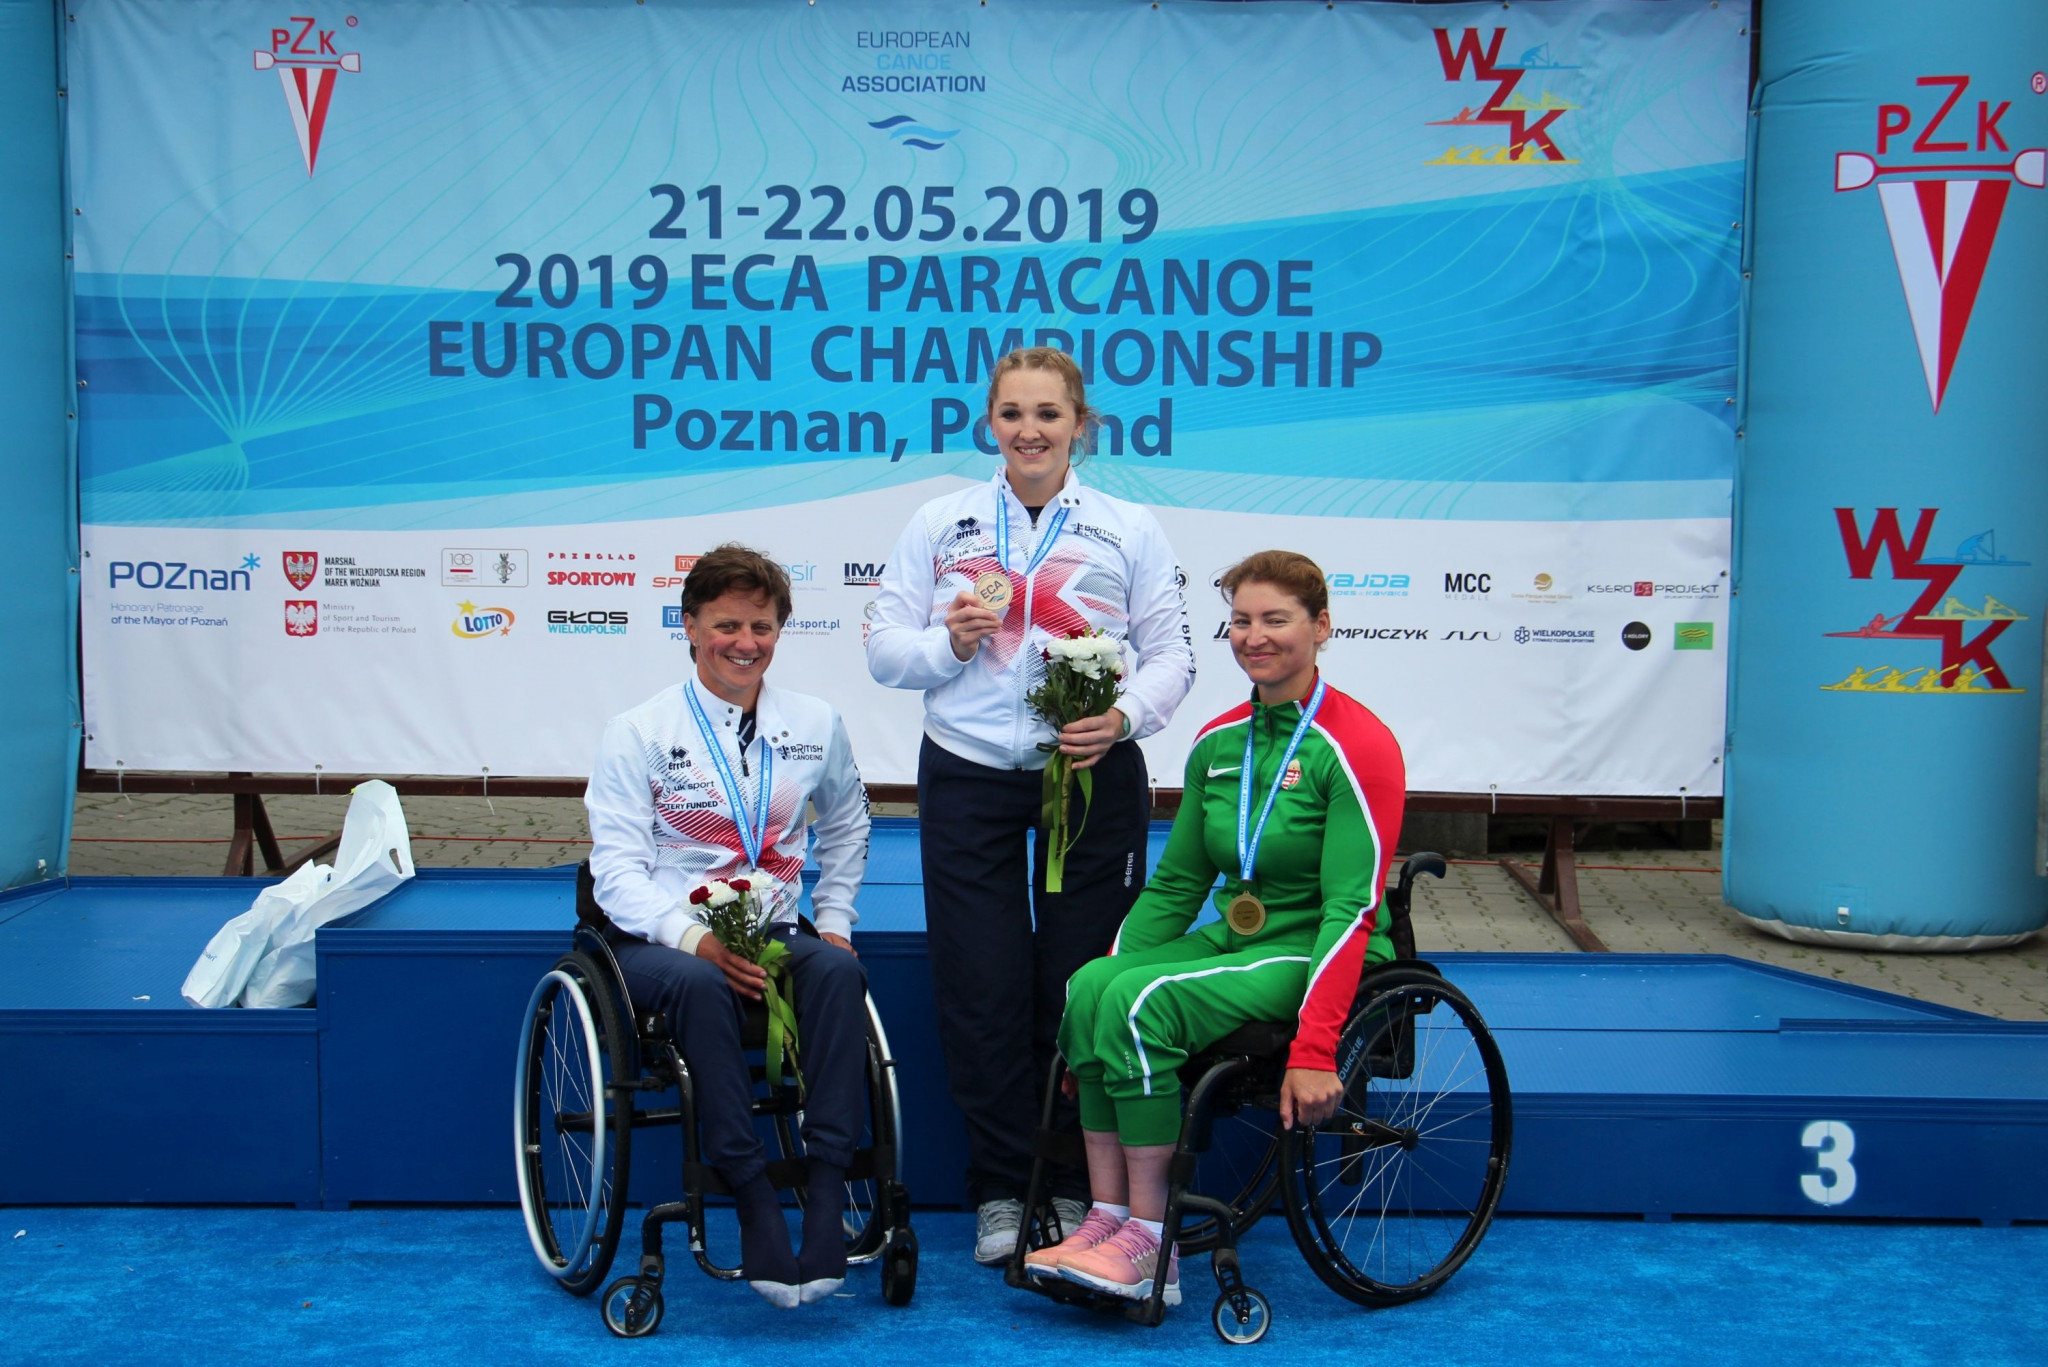 Six medals for Great Britain on final day of Paracanoe European Championships